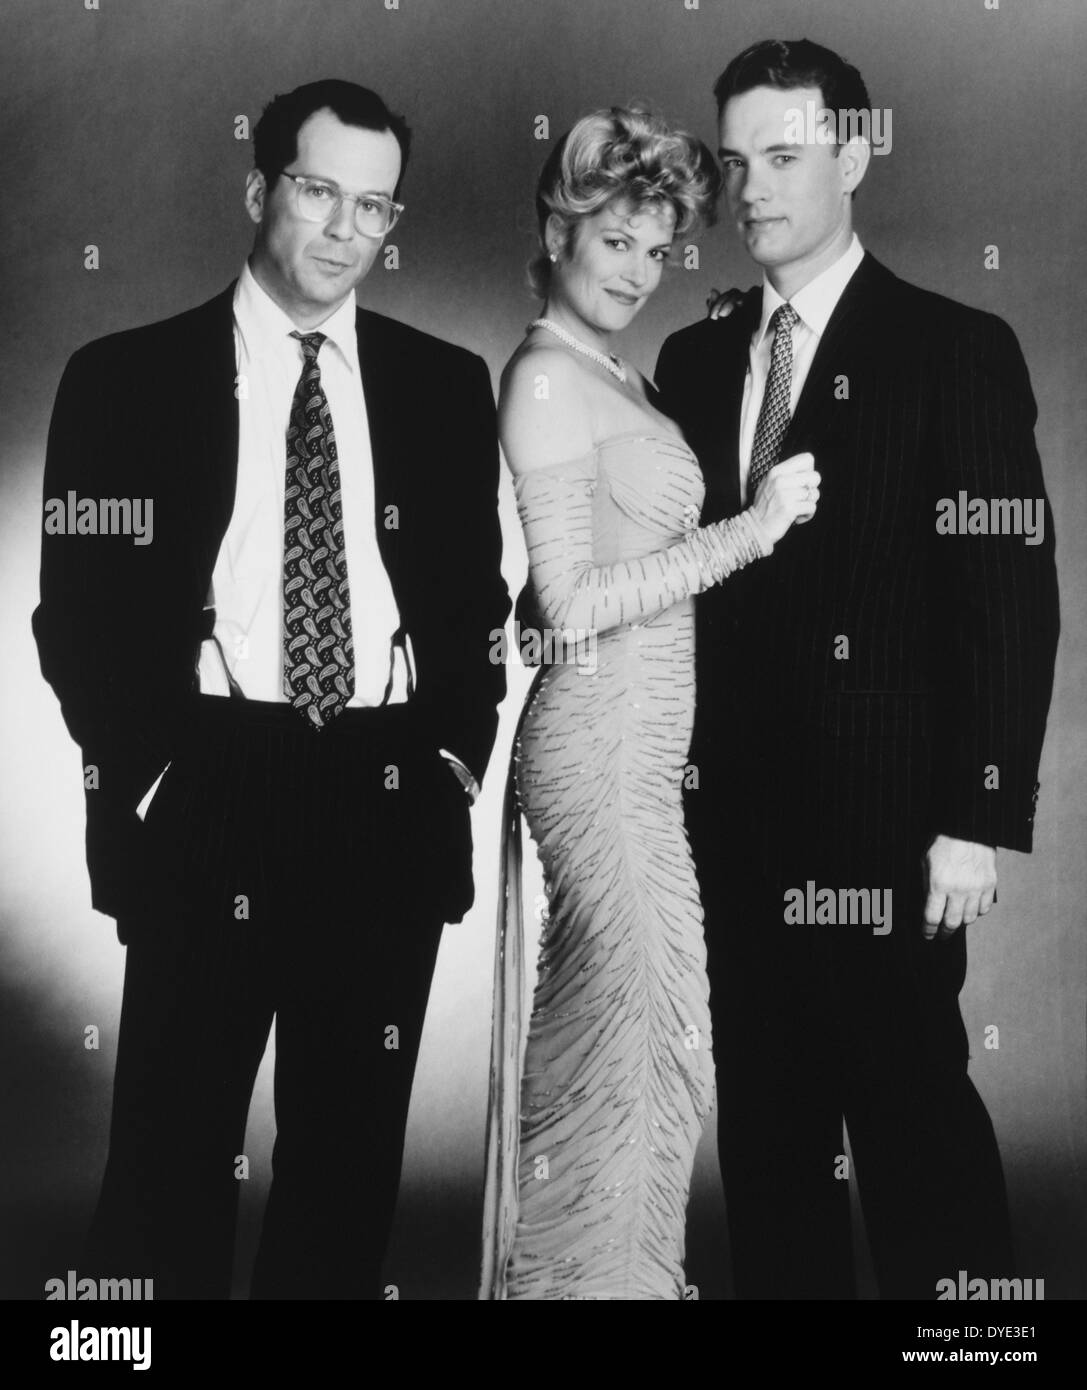 Tom Hanks, Melanie Griffith and Bruce Willis, on-set of the Film, 'The Bonfire of the Vanities', 1990 - Stock Image